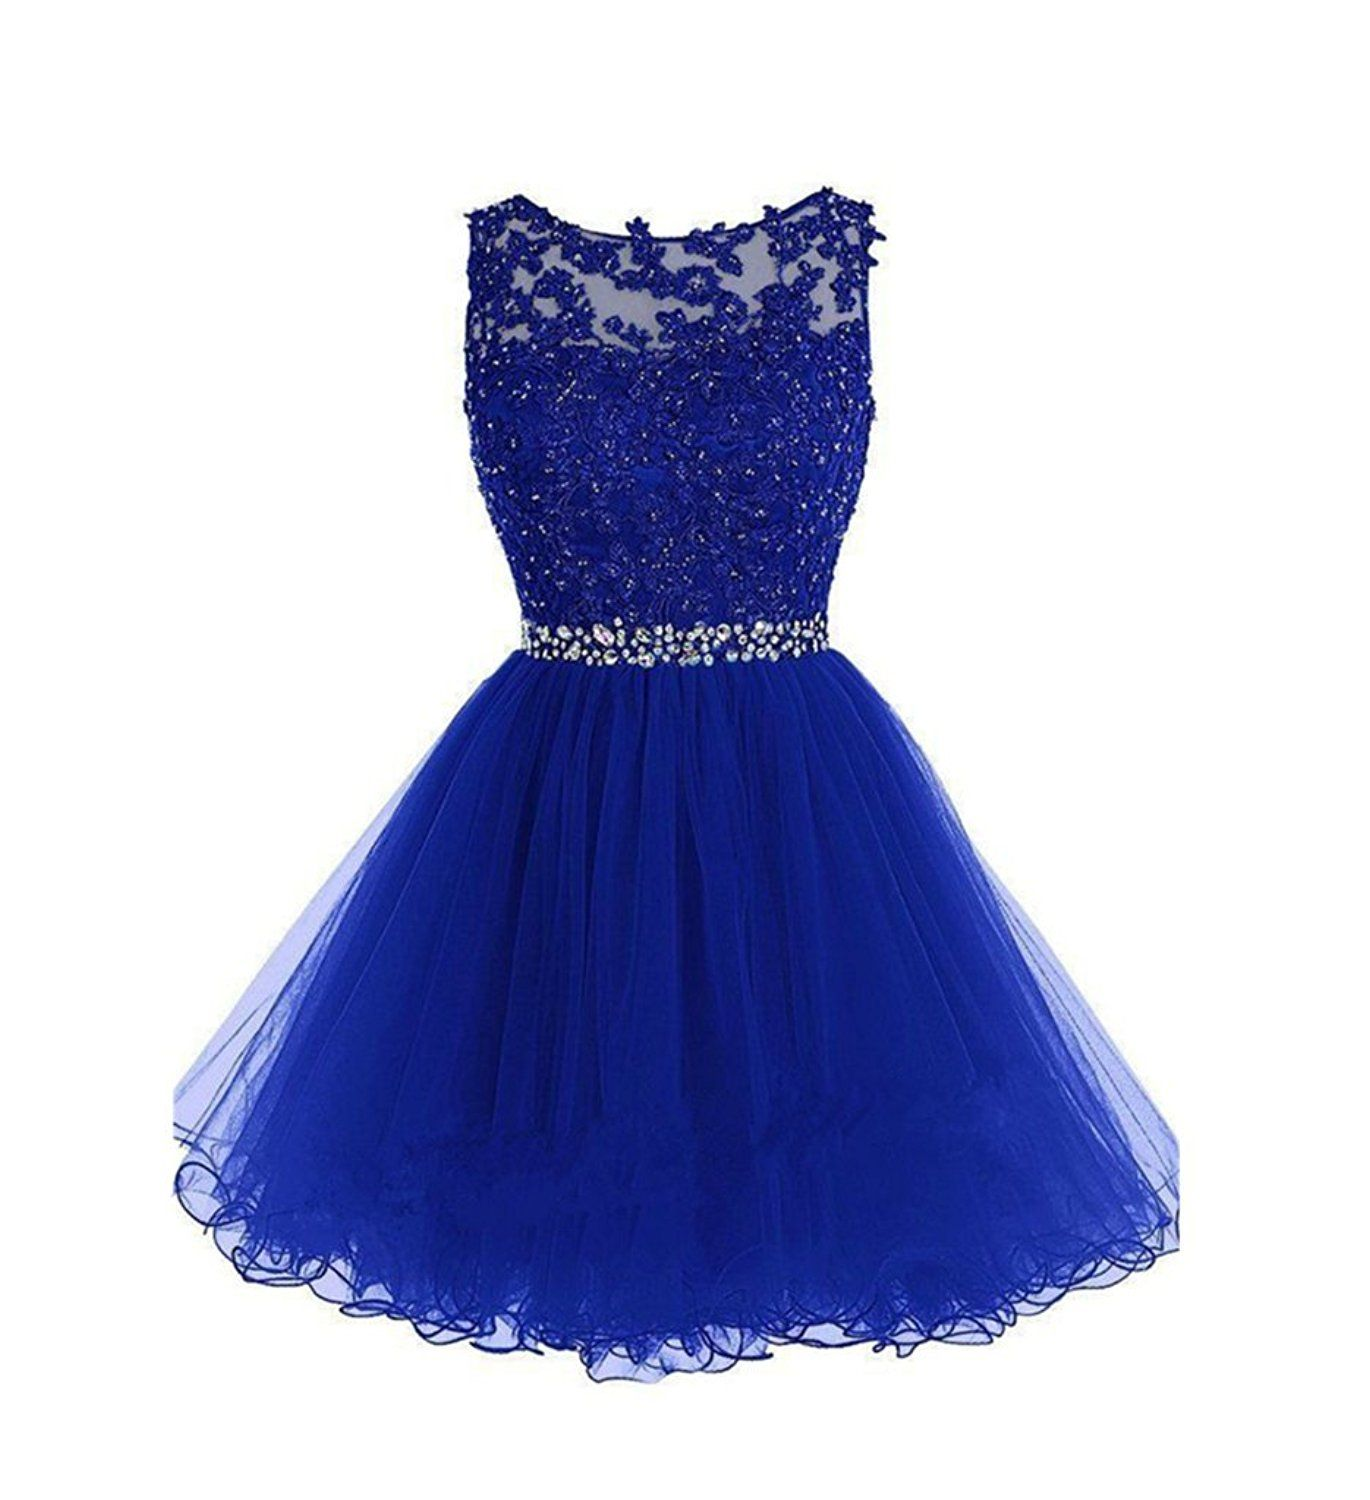 9e11532bfc8 ... Sweet 16 Dress For Teens. Drasawee Short Tulle Evening Cocktail Ball Gowns  Prom Dresses for Teen Girls Blue UK4